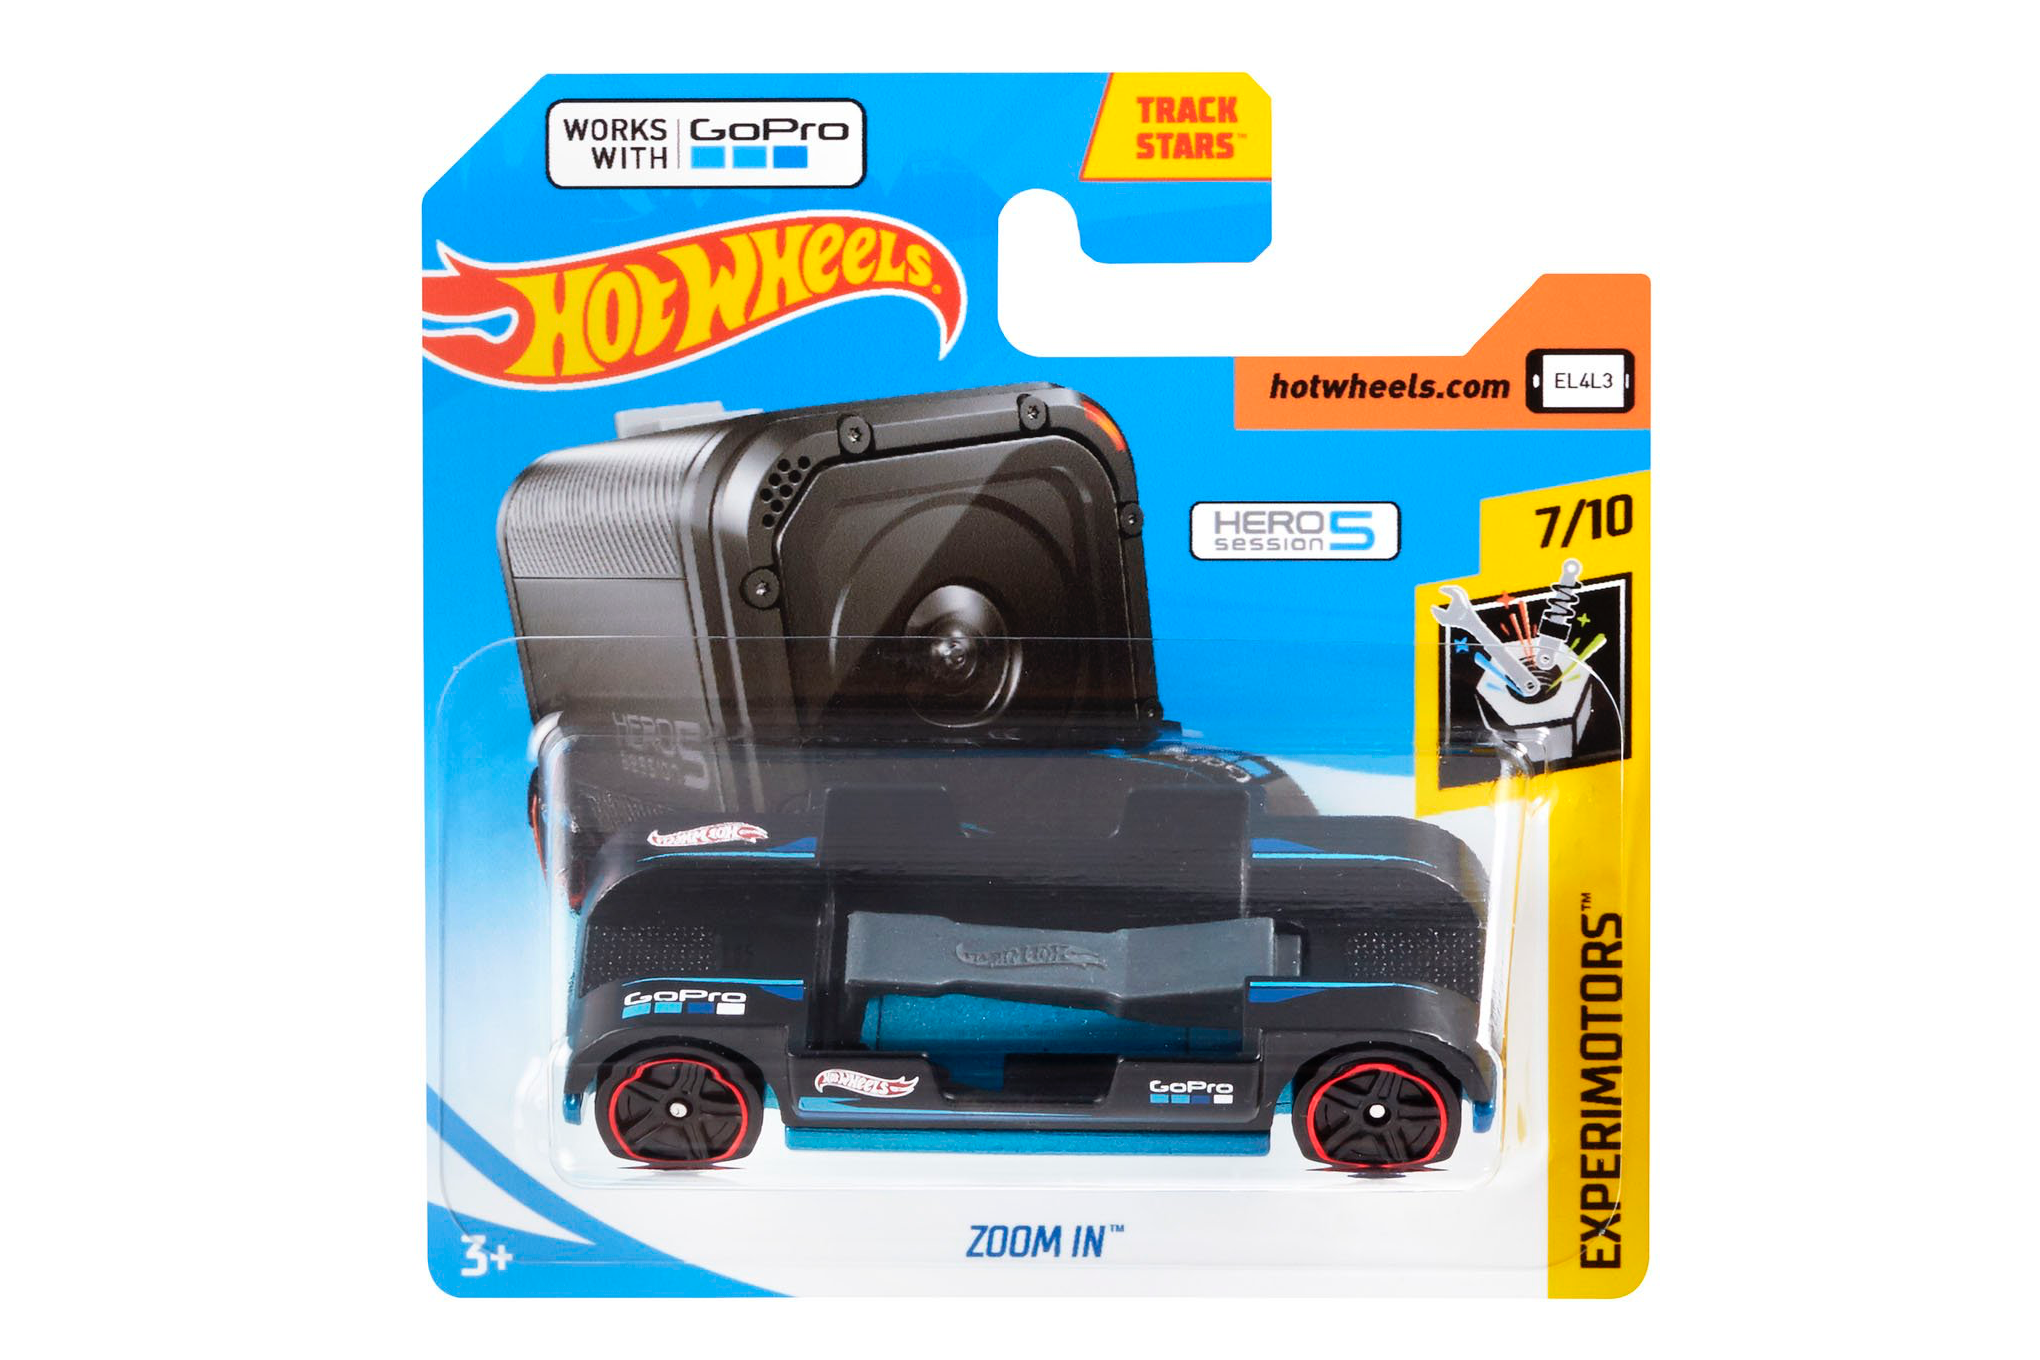 Hot Wheels Toy Car Holder Truck : Photography the verge